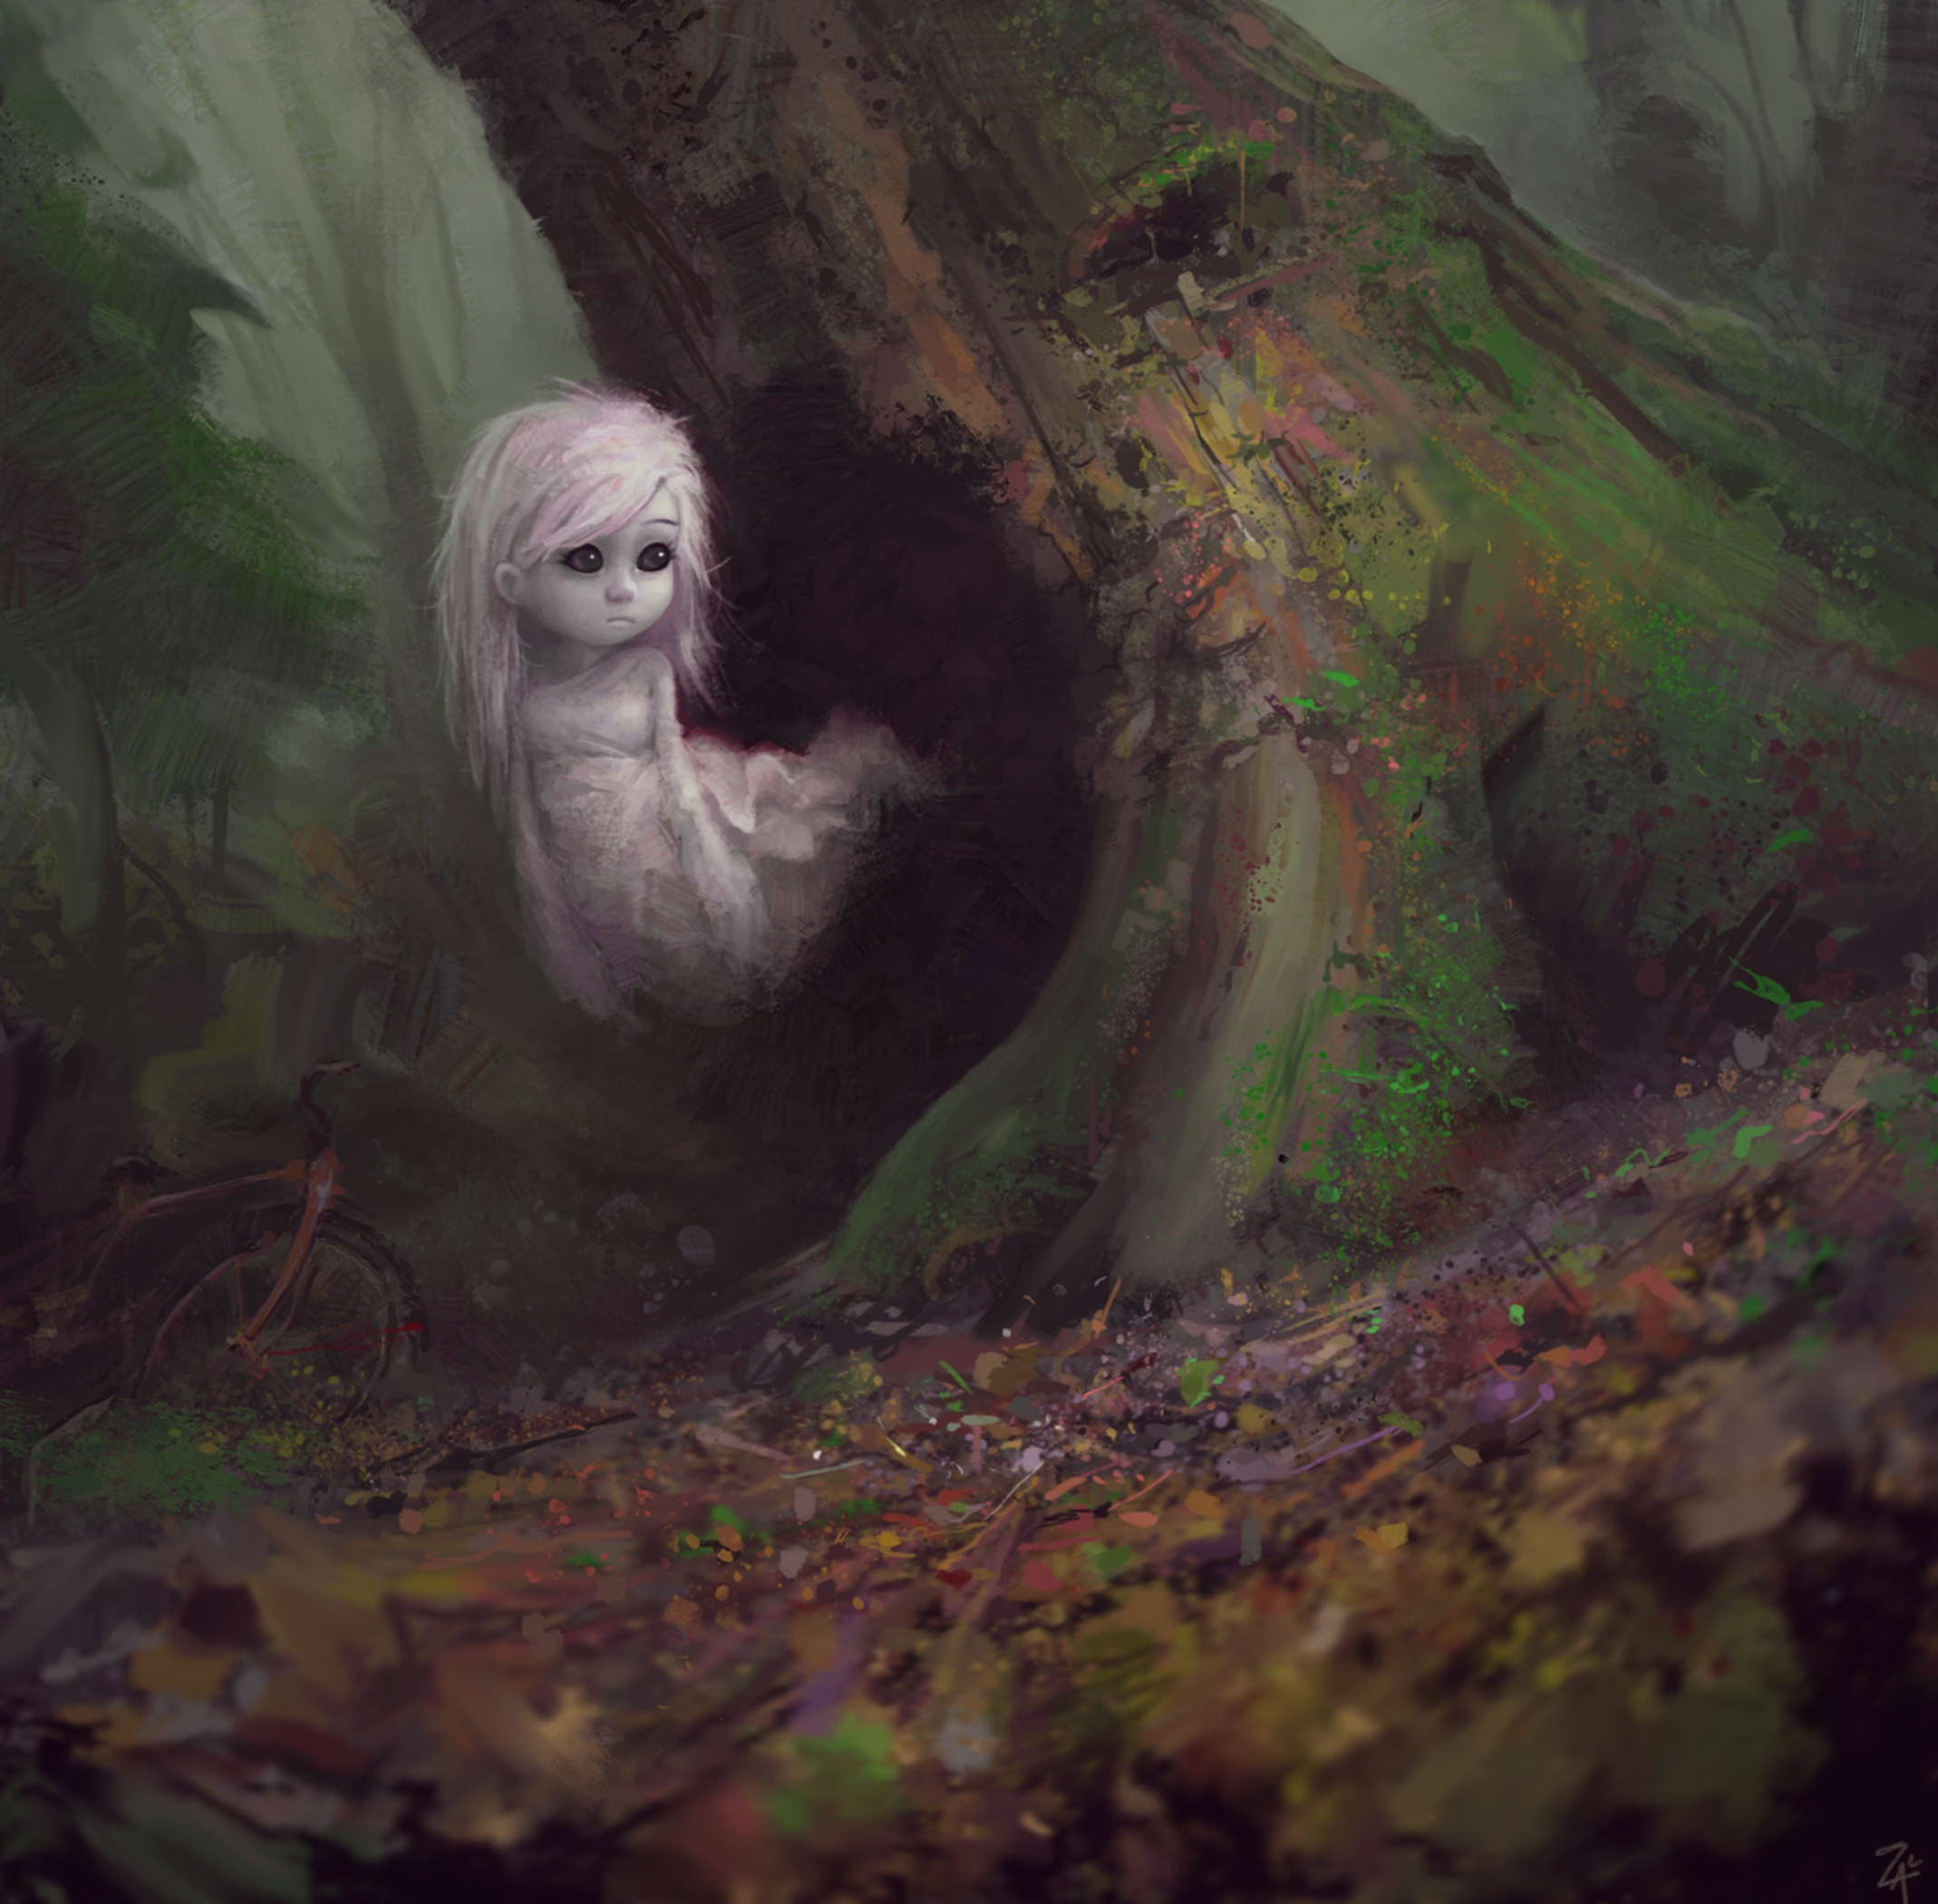 Ghost - ghost, bike, forest - zacretz | ello